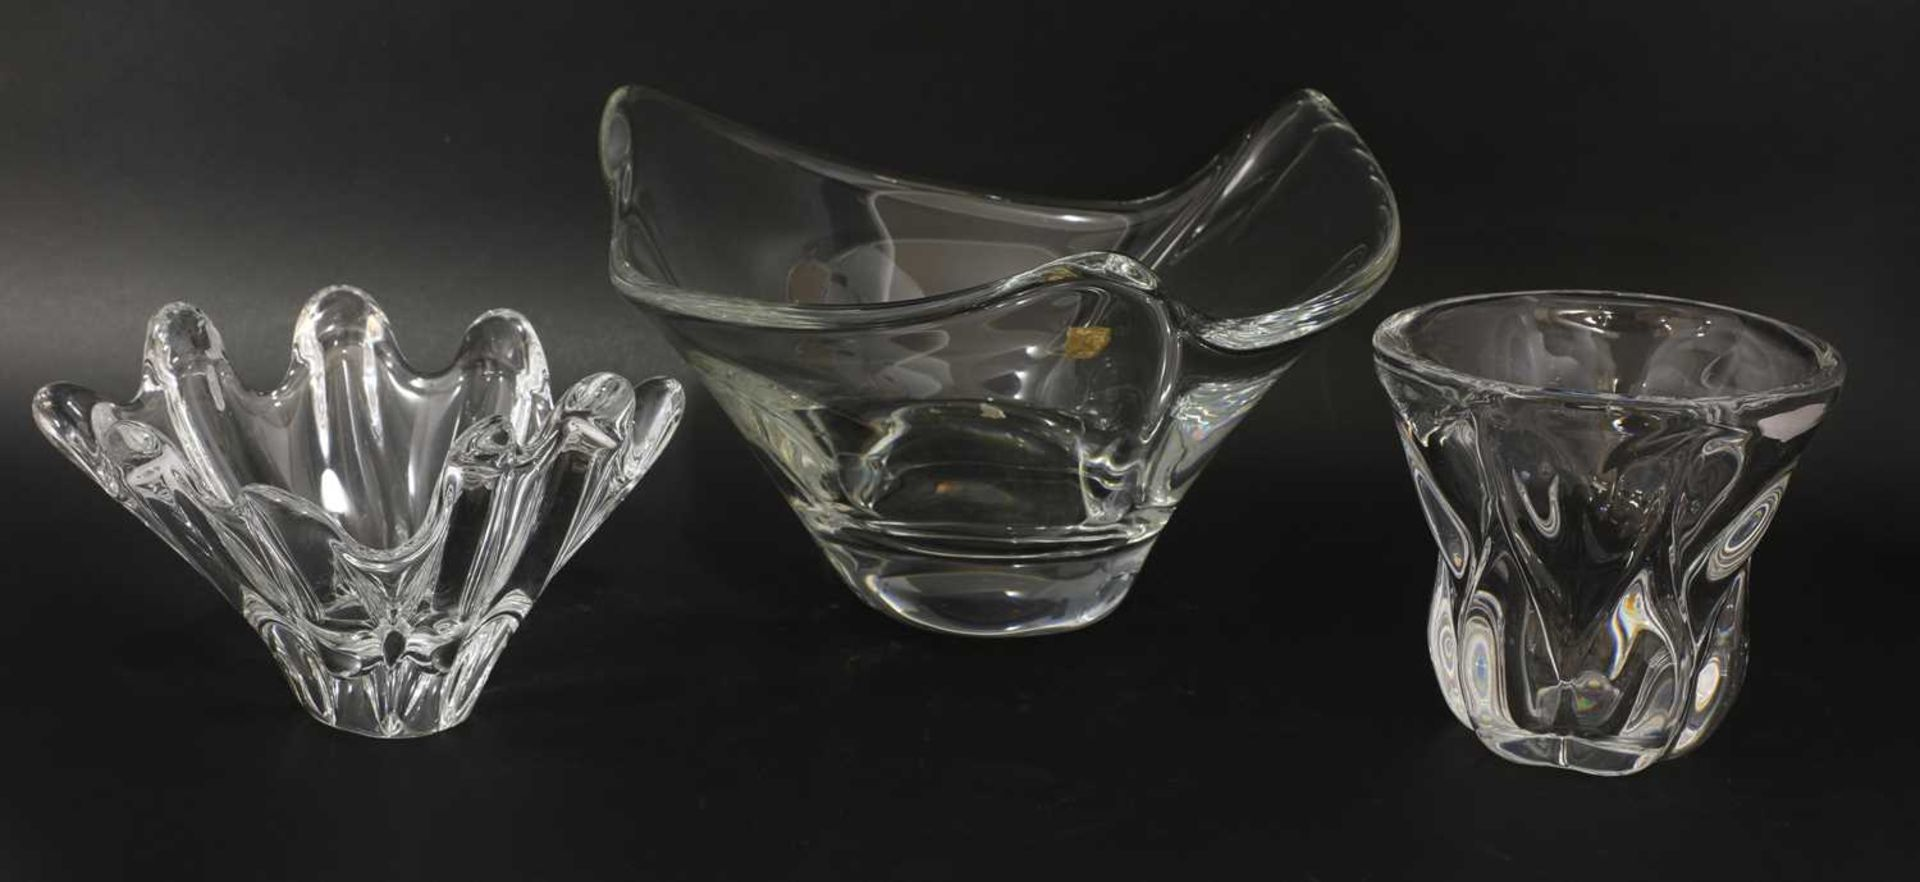 A Daum clear glass bowl,